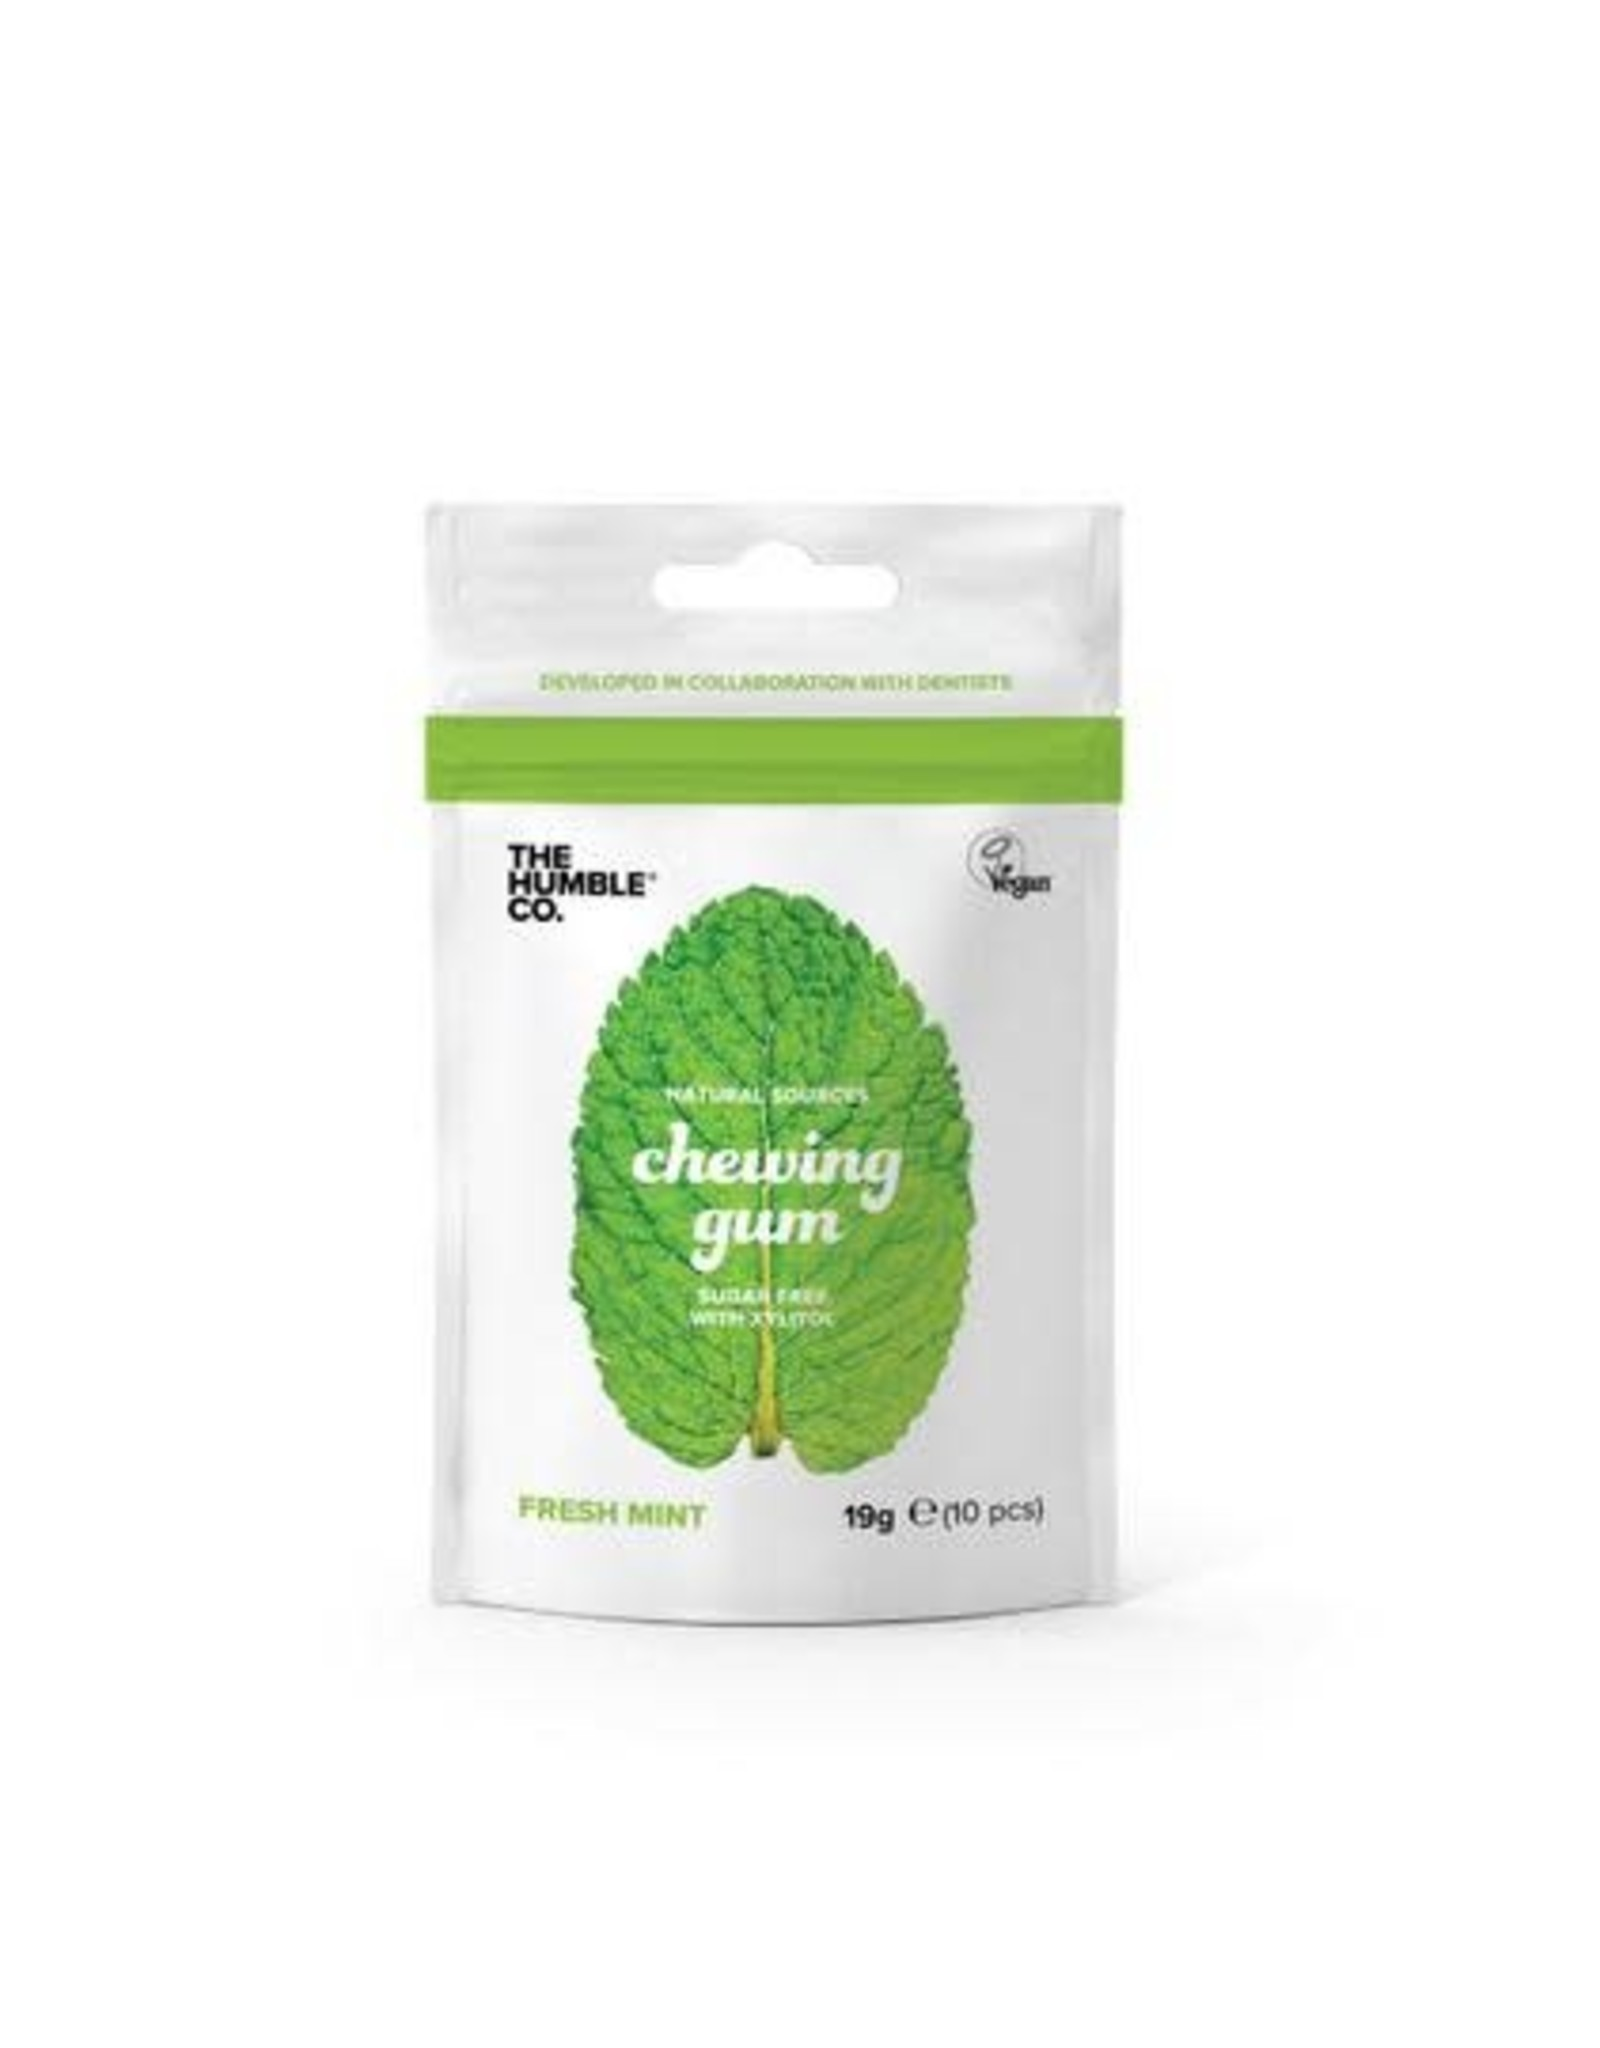 The Humble Co. Humble Chewing Gum sugar free Fresh Mint 19g